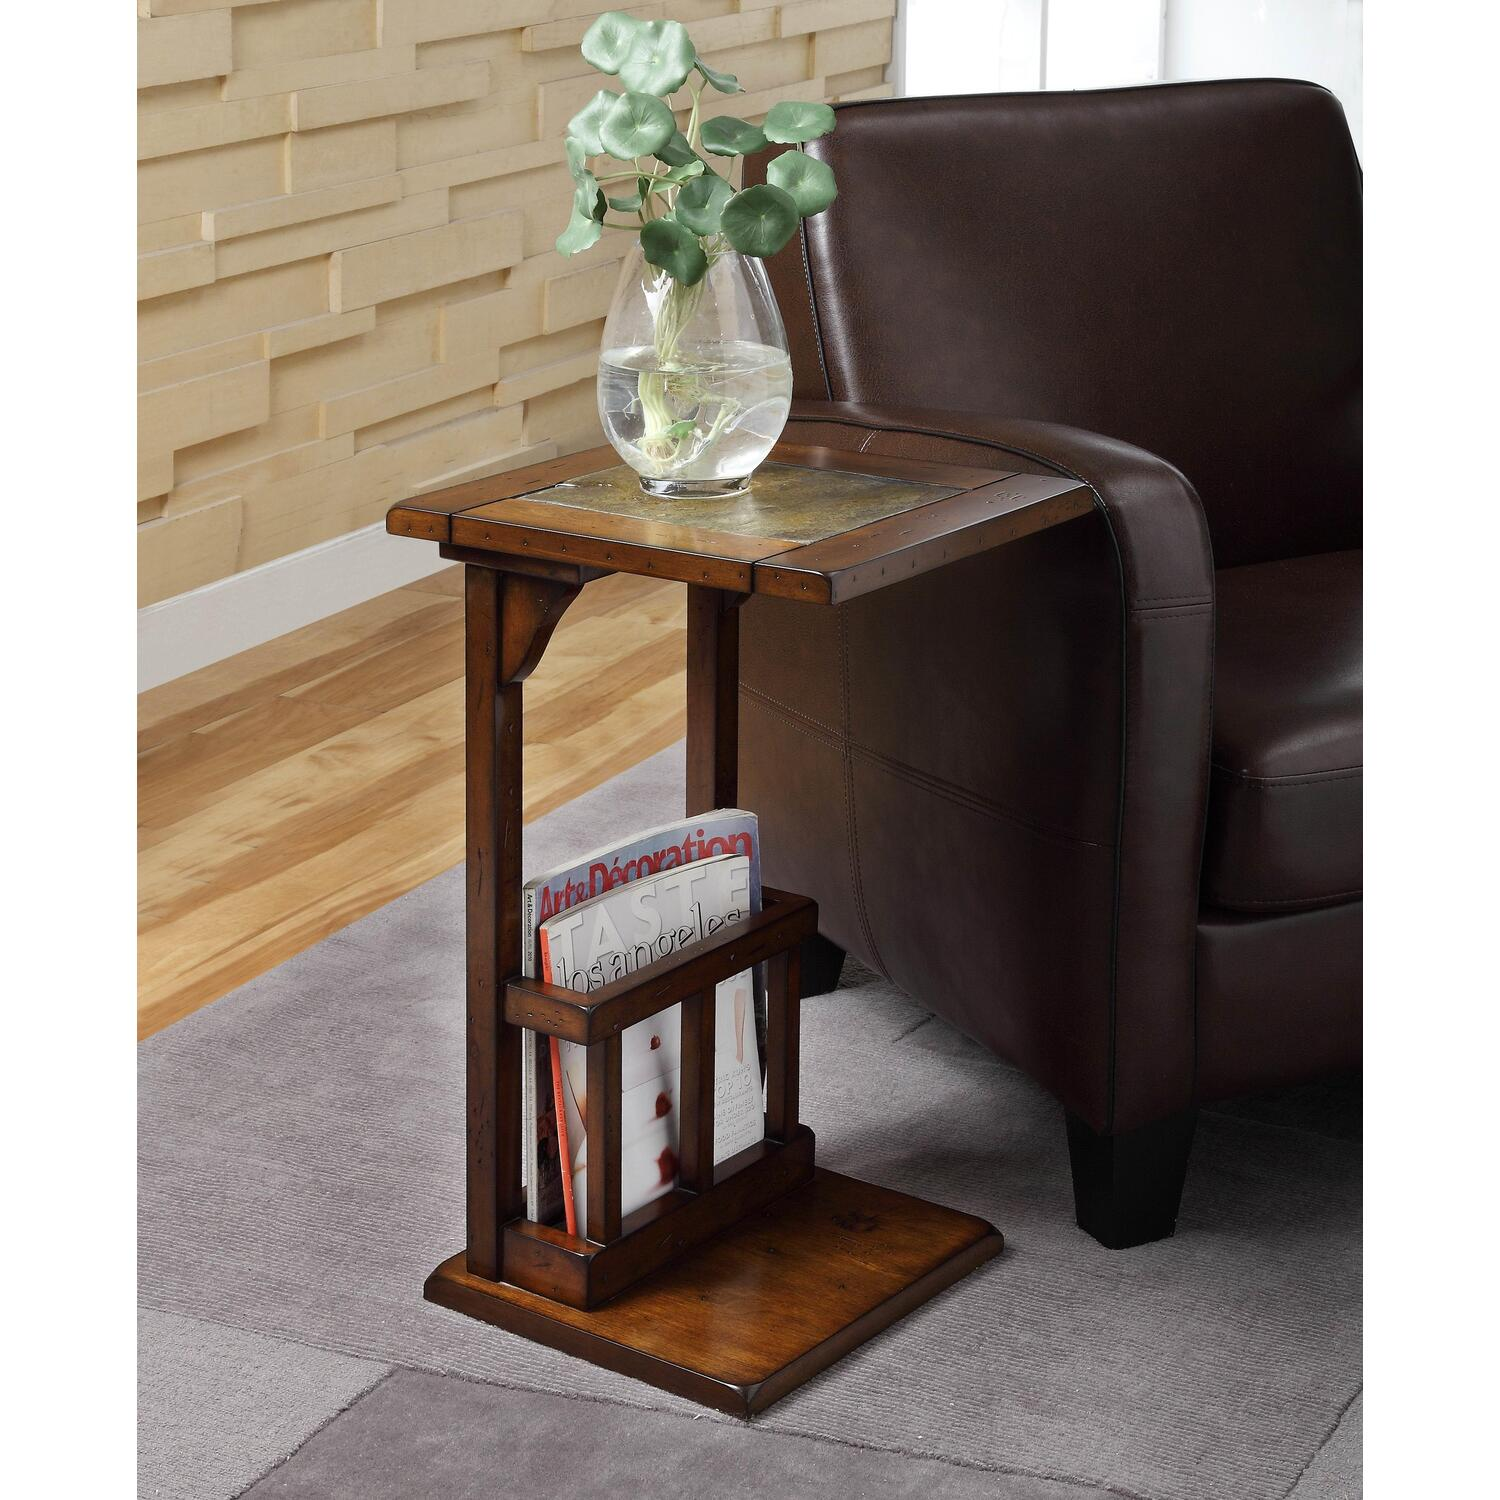 Homelegance Berman Chairside Table by OJ merce $86 04